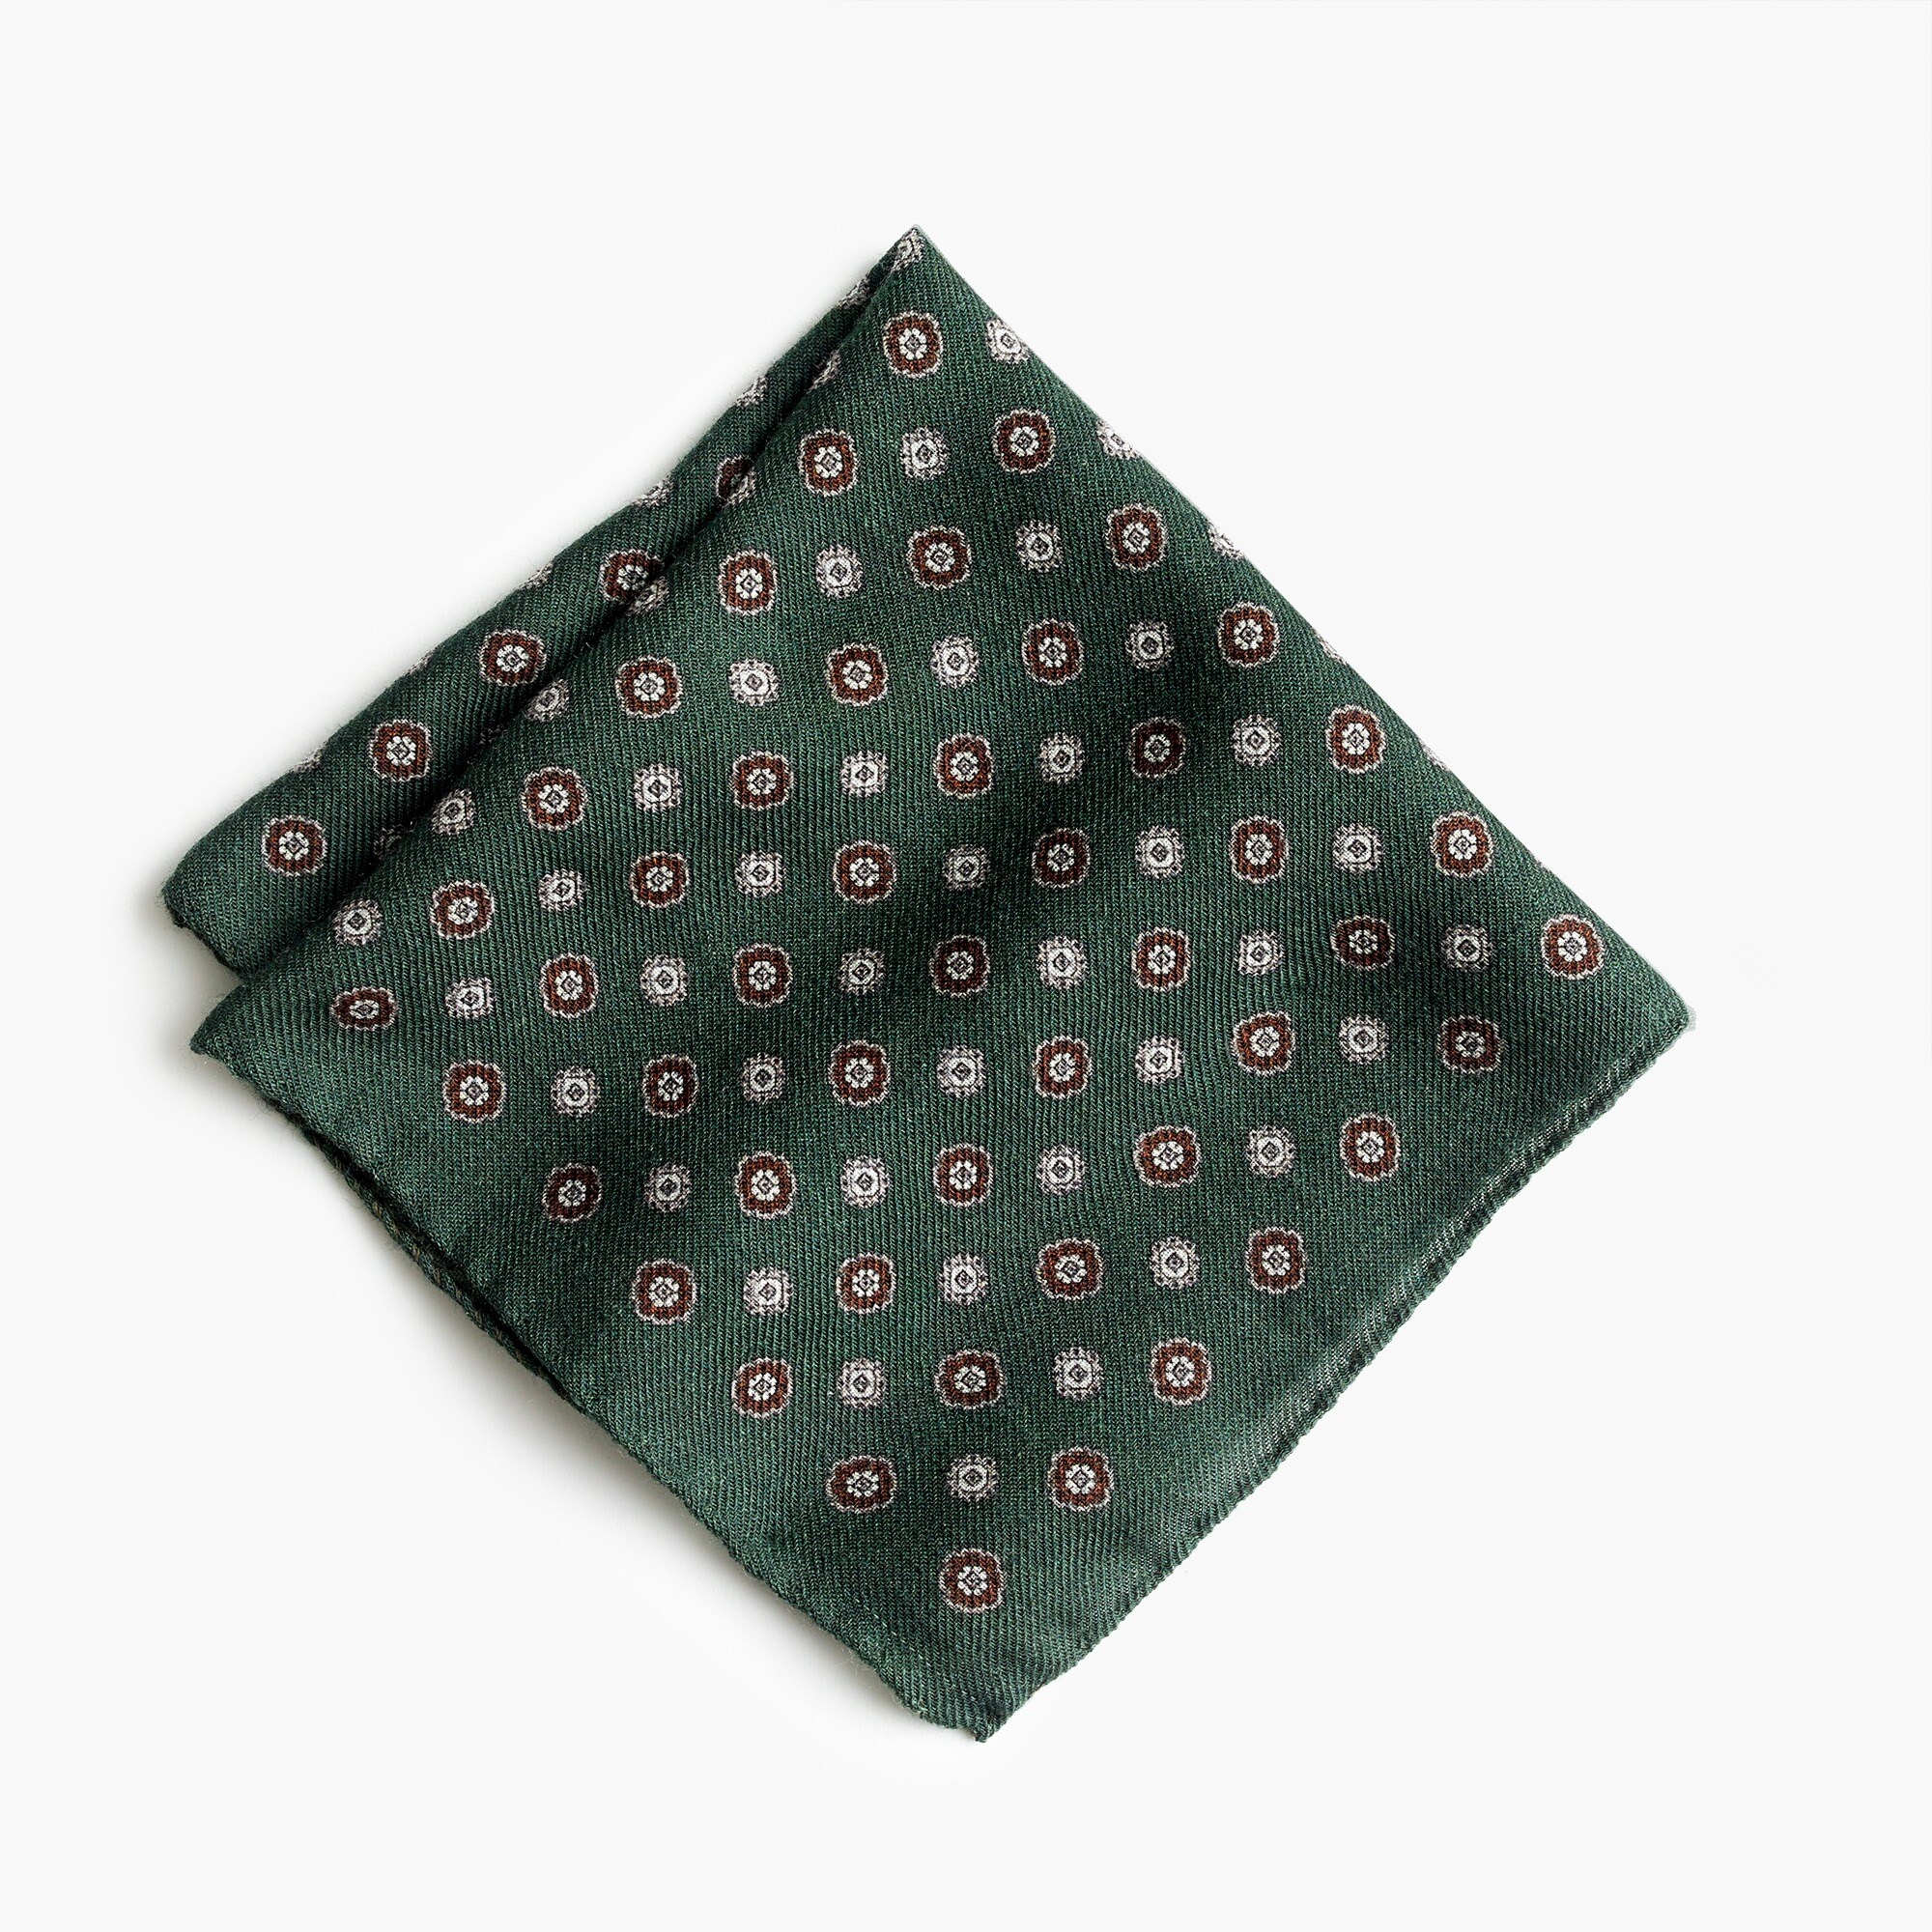 wool flannel pocket square in medallion pattern : men pocket squares